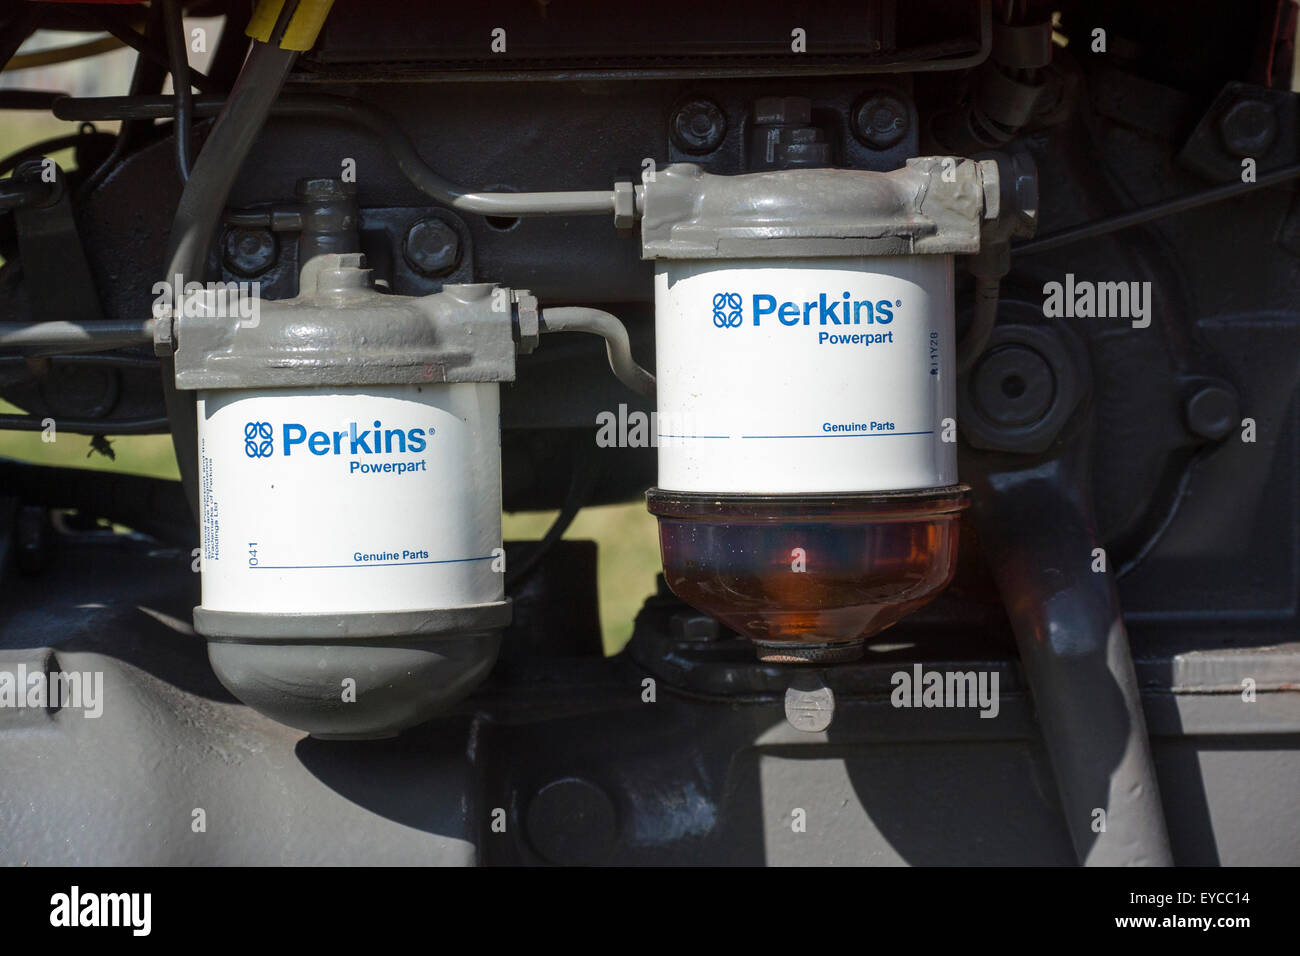 hight resolution of fuel filters on a massey ferguson vintage tractor stock image